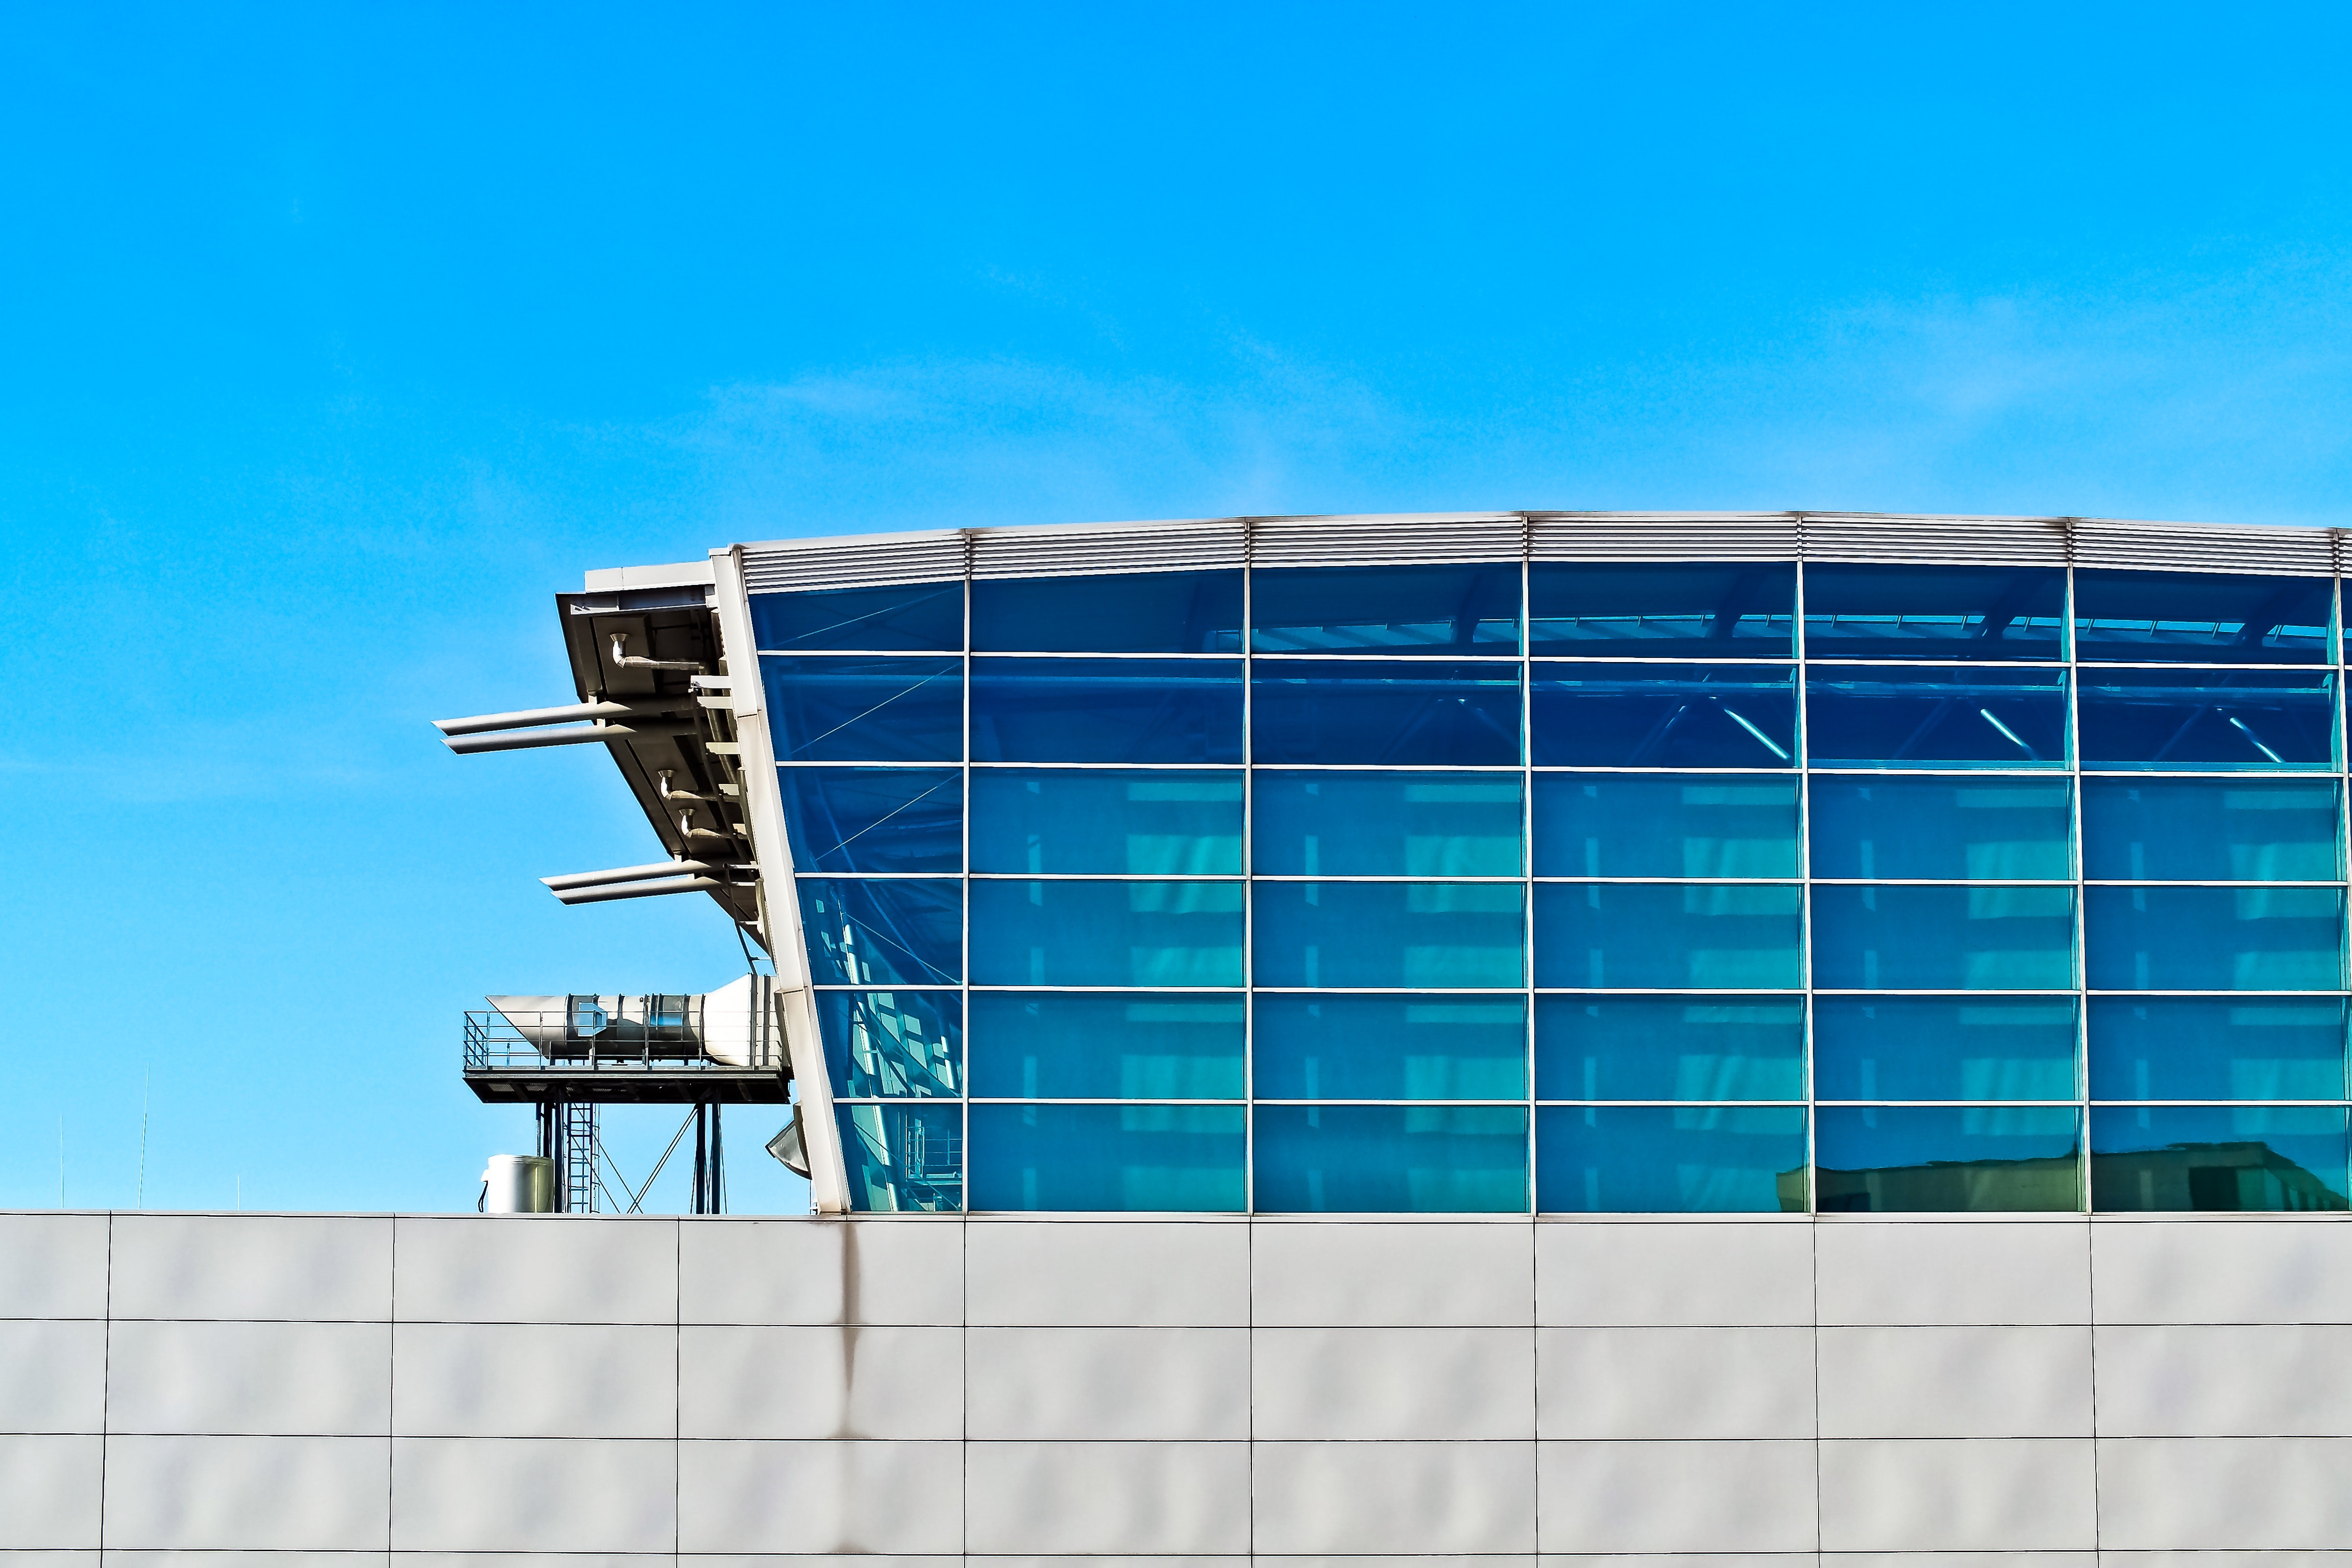 Low Angle View of Built Structure Against Blue Sky, Architecture, Metal, Reflection, Perspective, HQ Photo